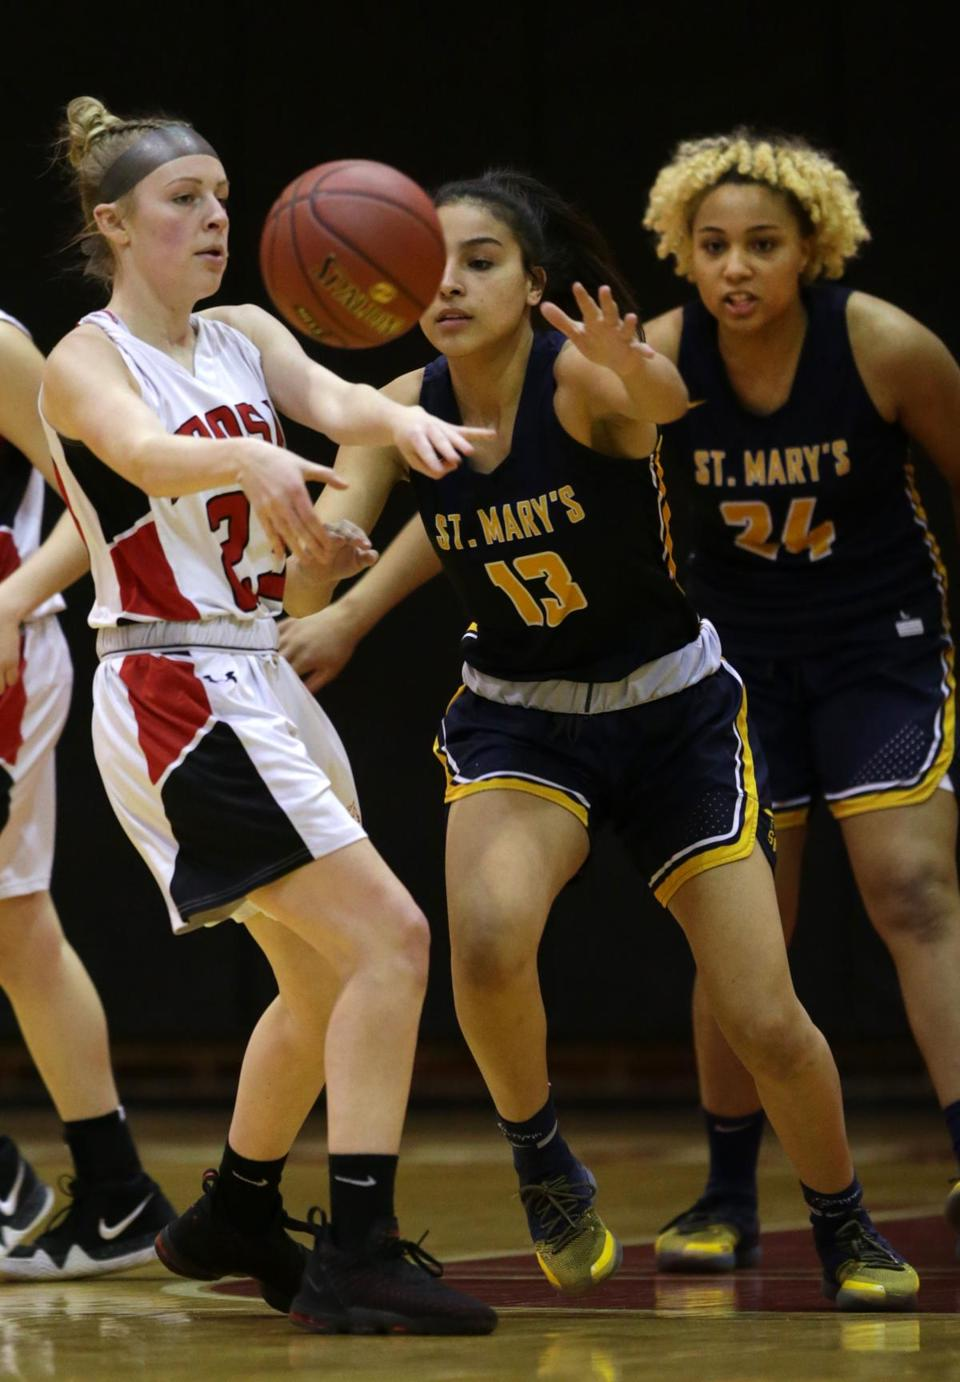 Hoosac's Alison Mendel (left) battlles with St. Mary's Pamela Gonzalez (13) for a loose ball.